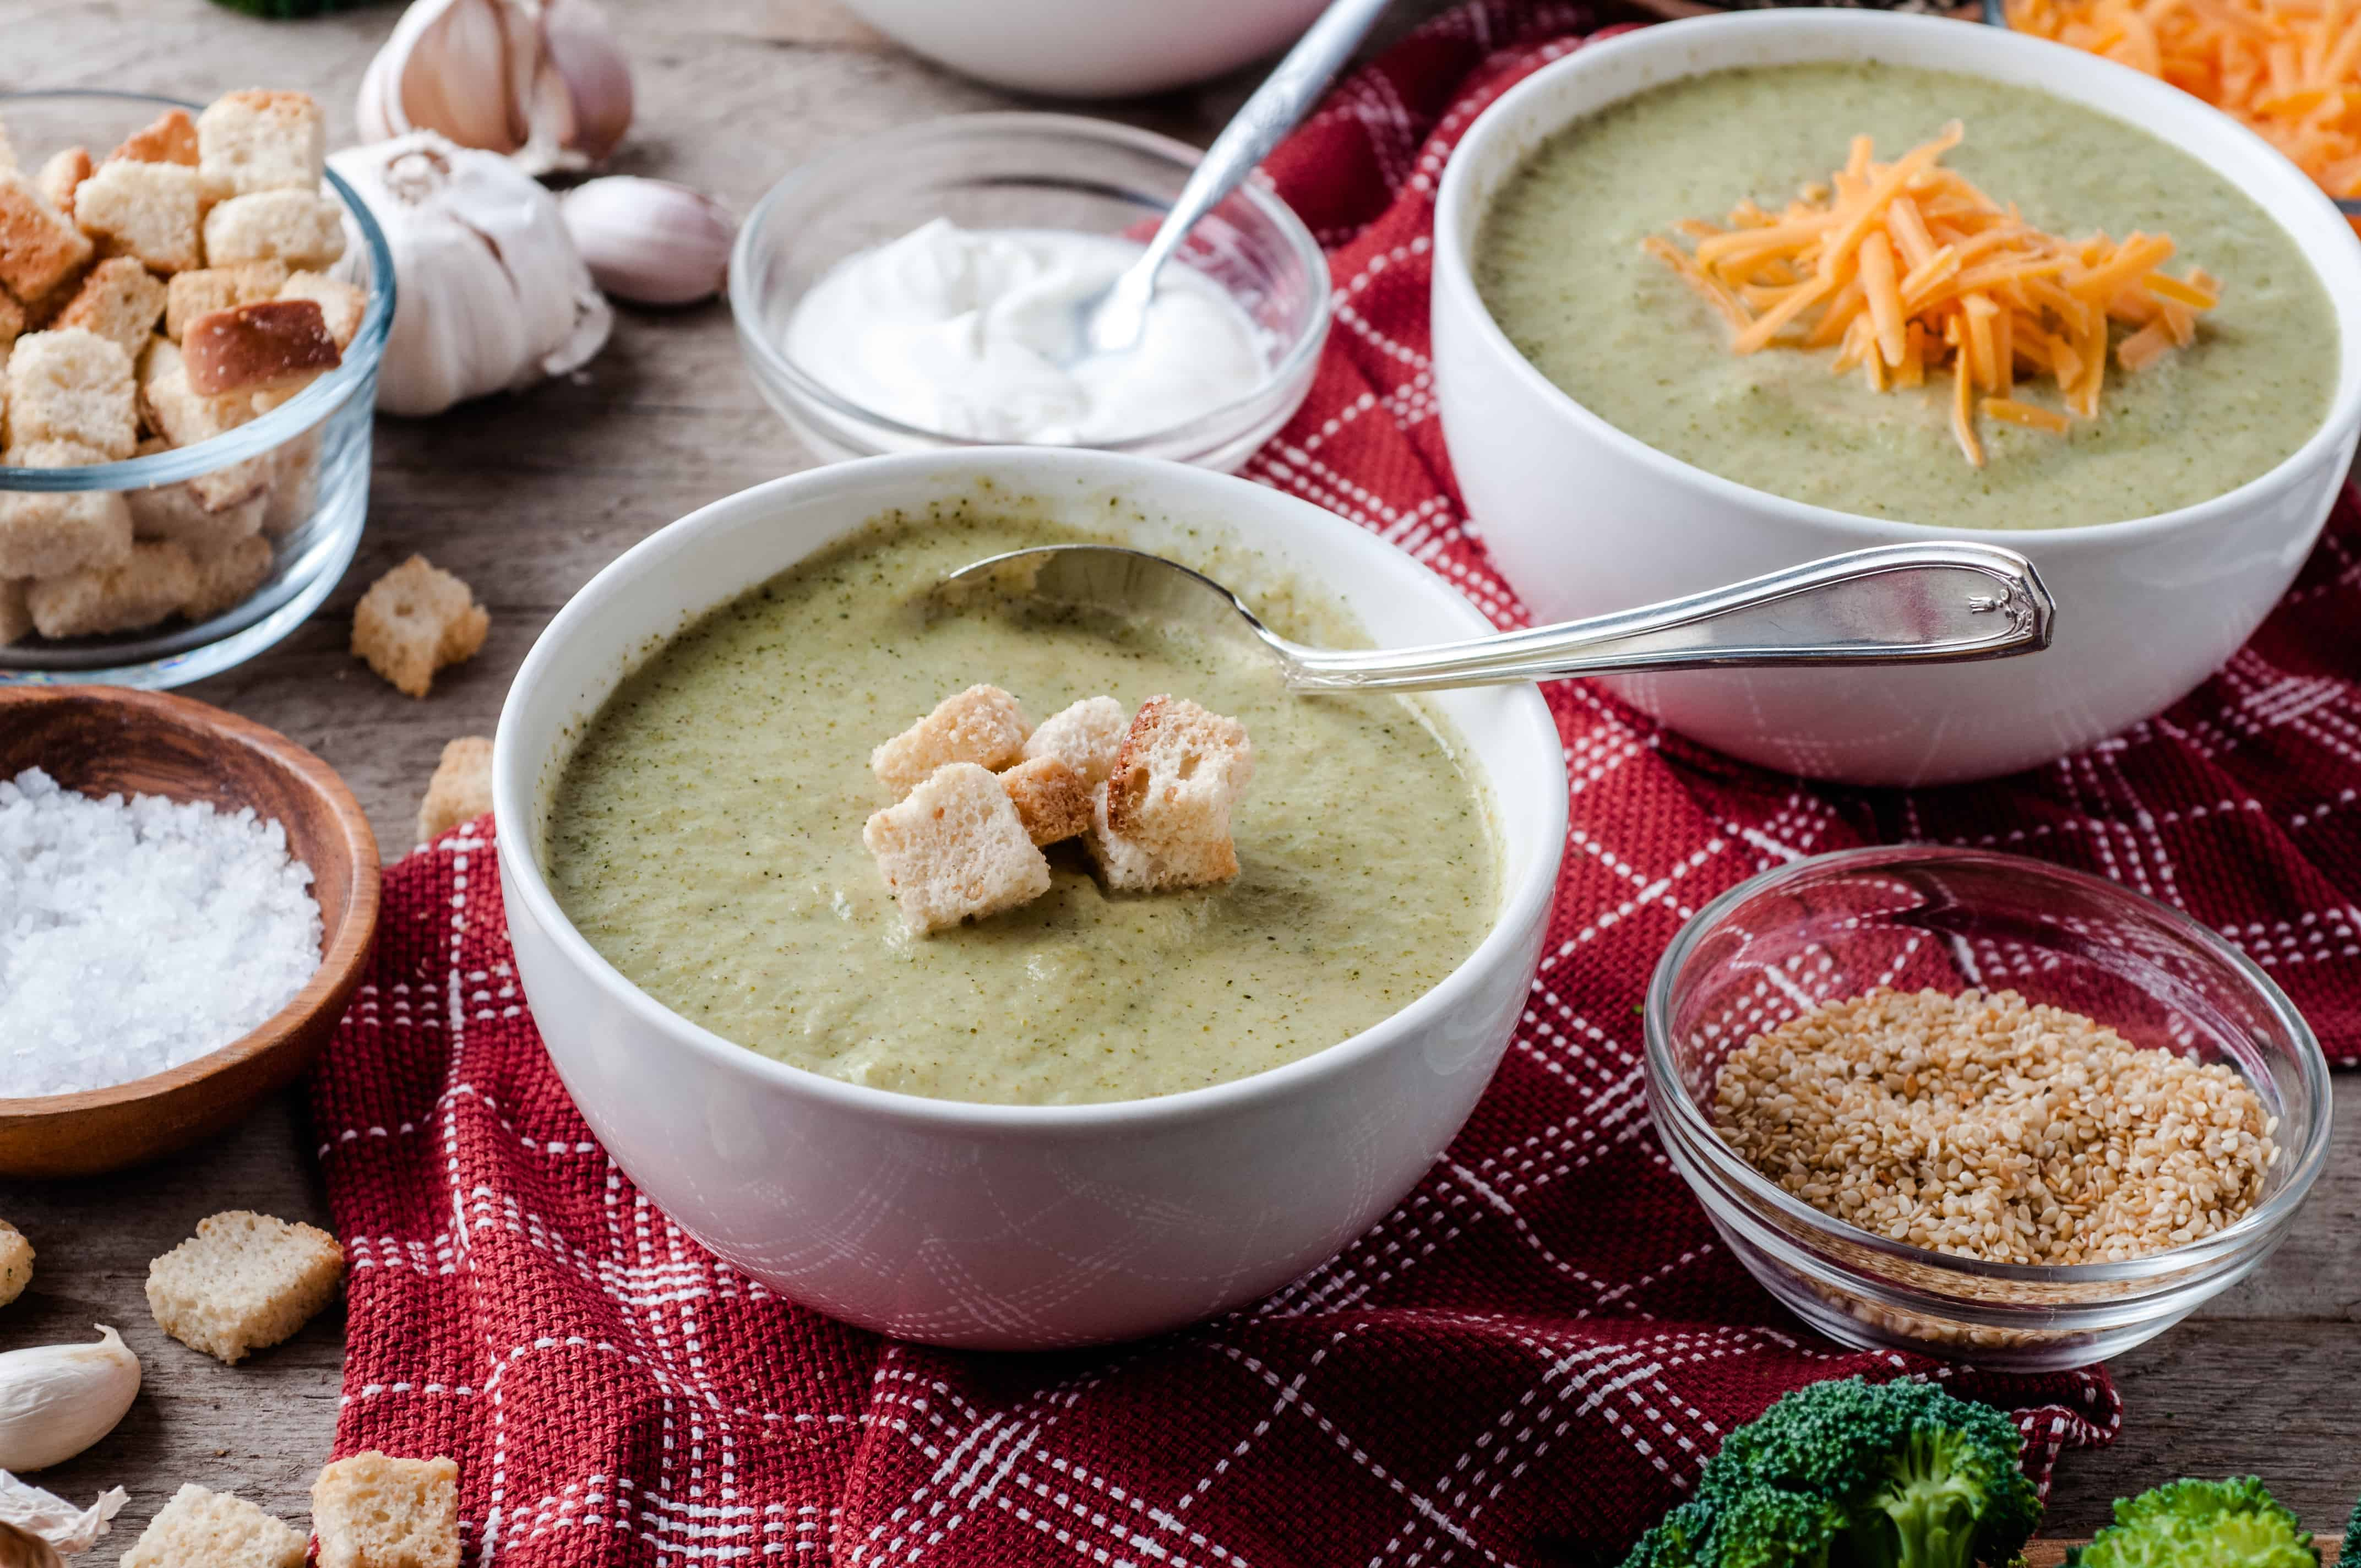 2 bowls Vegetarian Cream of Broccoli soup with toppings on them.